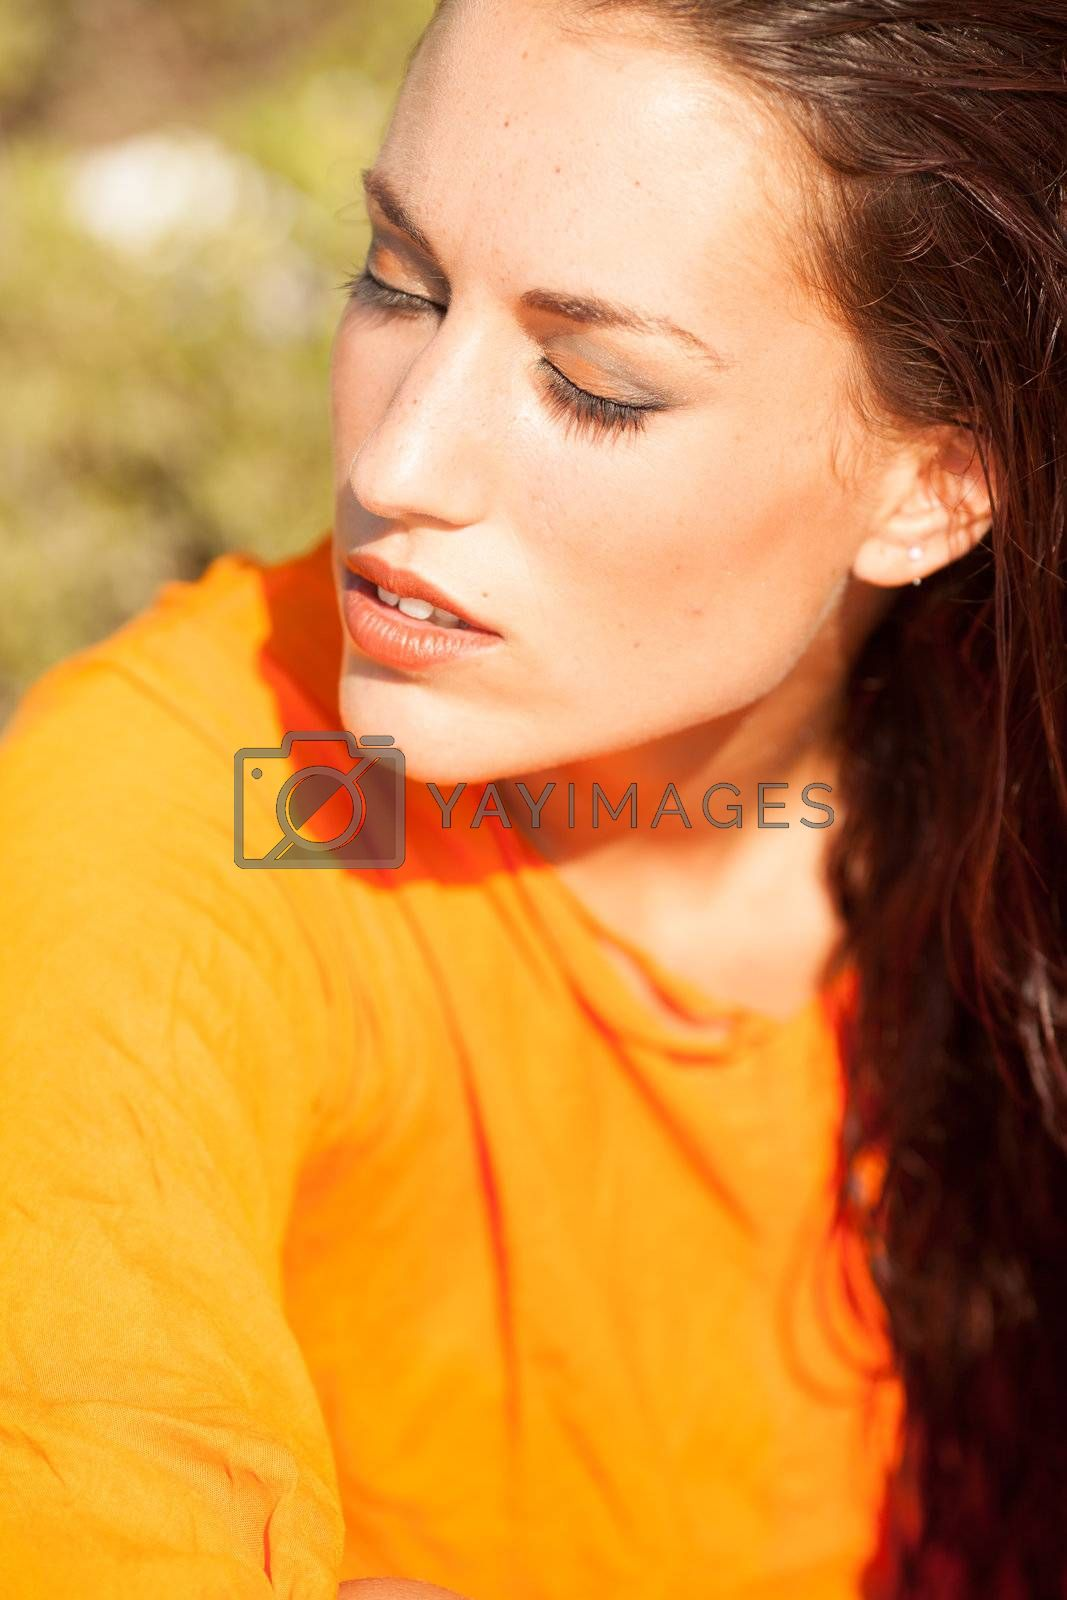 Portrait of young beautiful model posing on outdoors with orange shirt